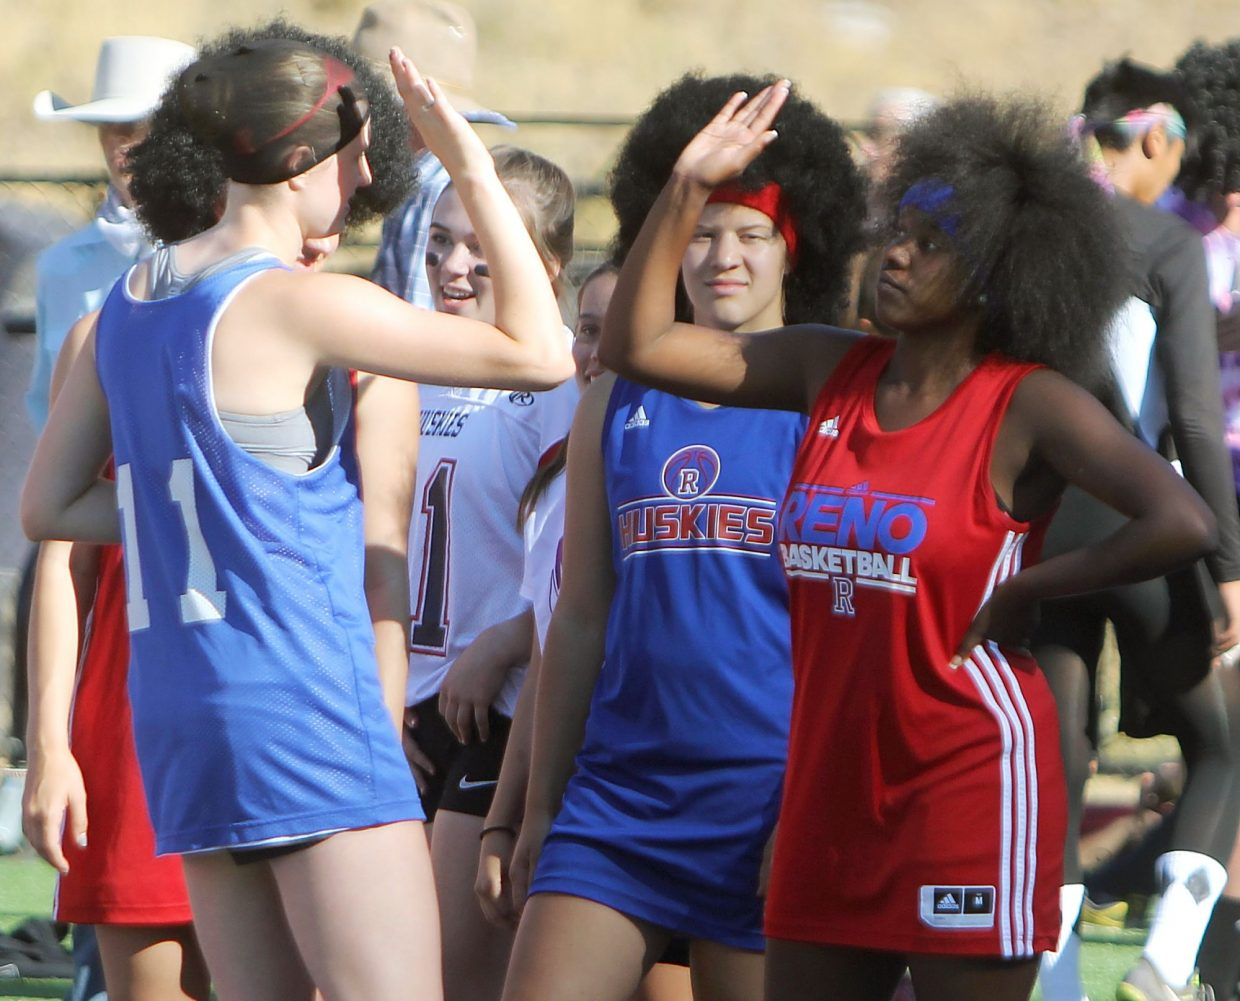 A duo of big-hair runners from Reno exchanges a high five at the start line Tuesday.